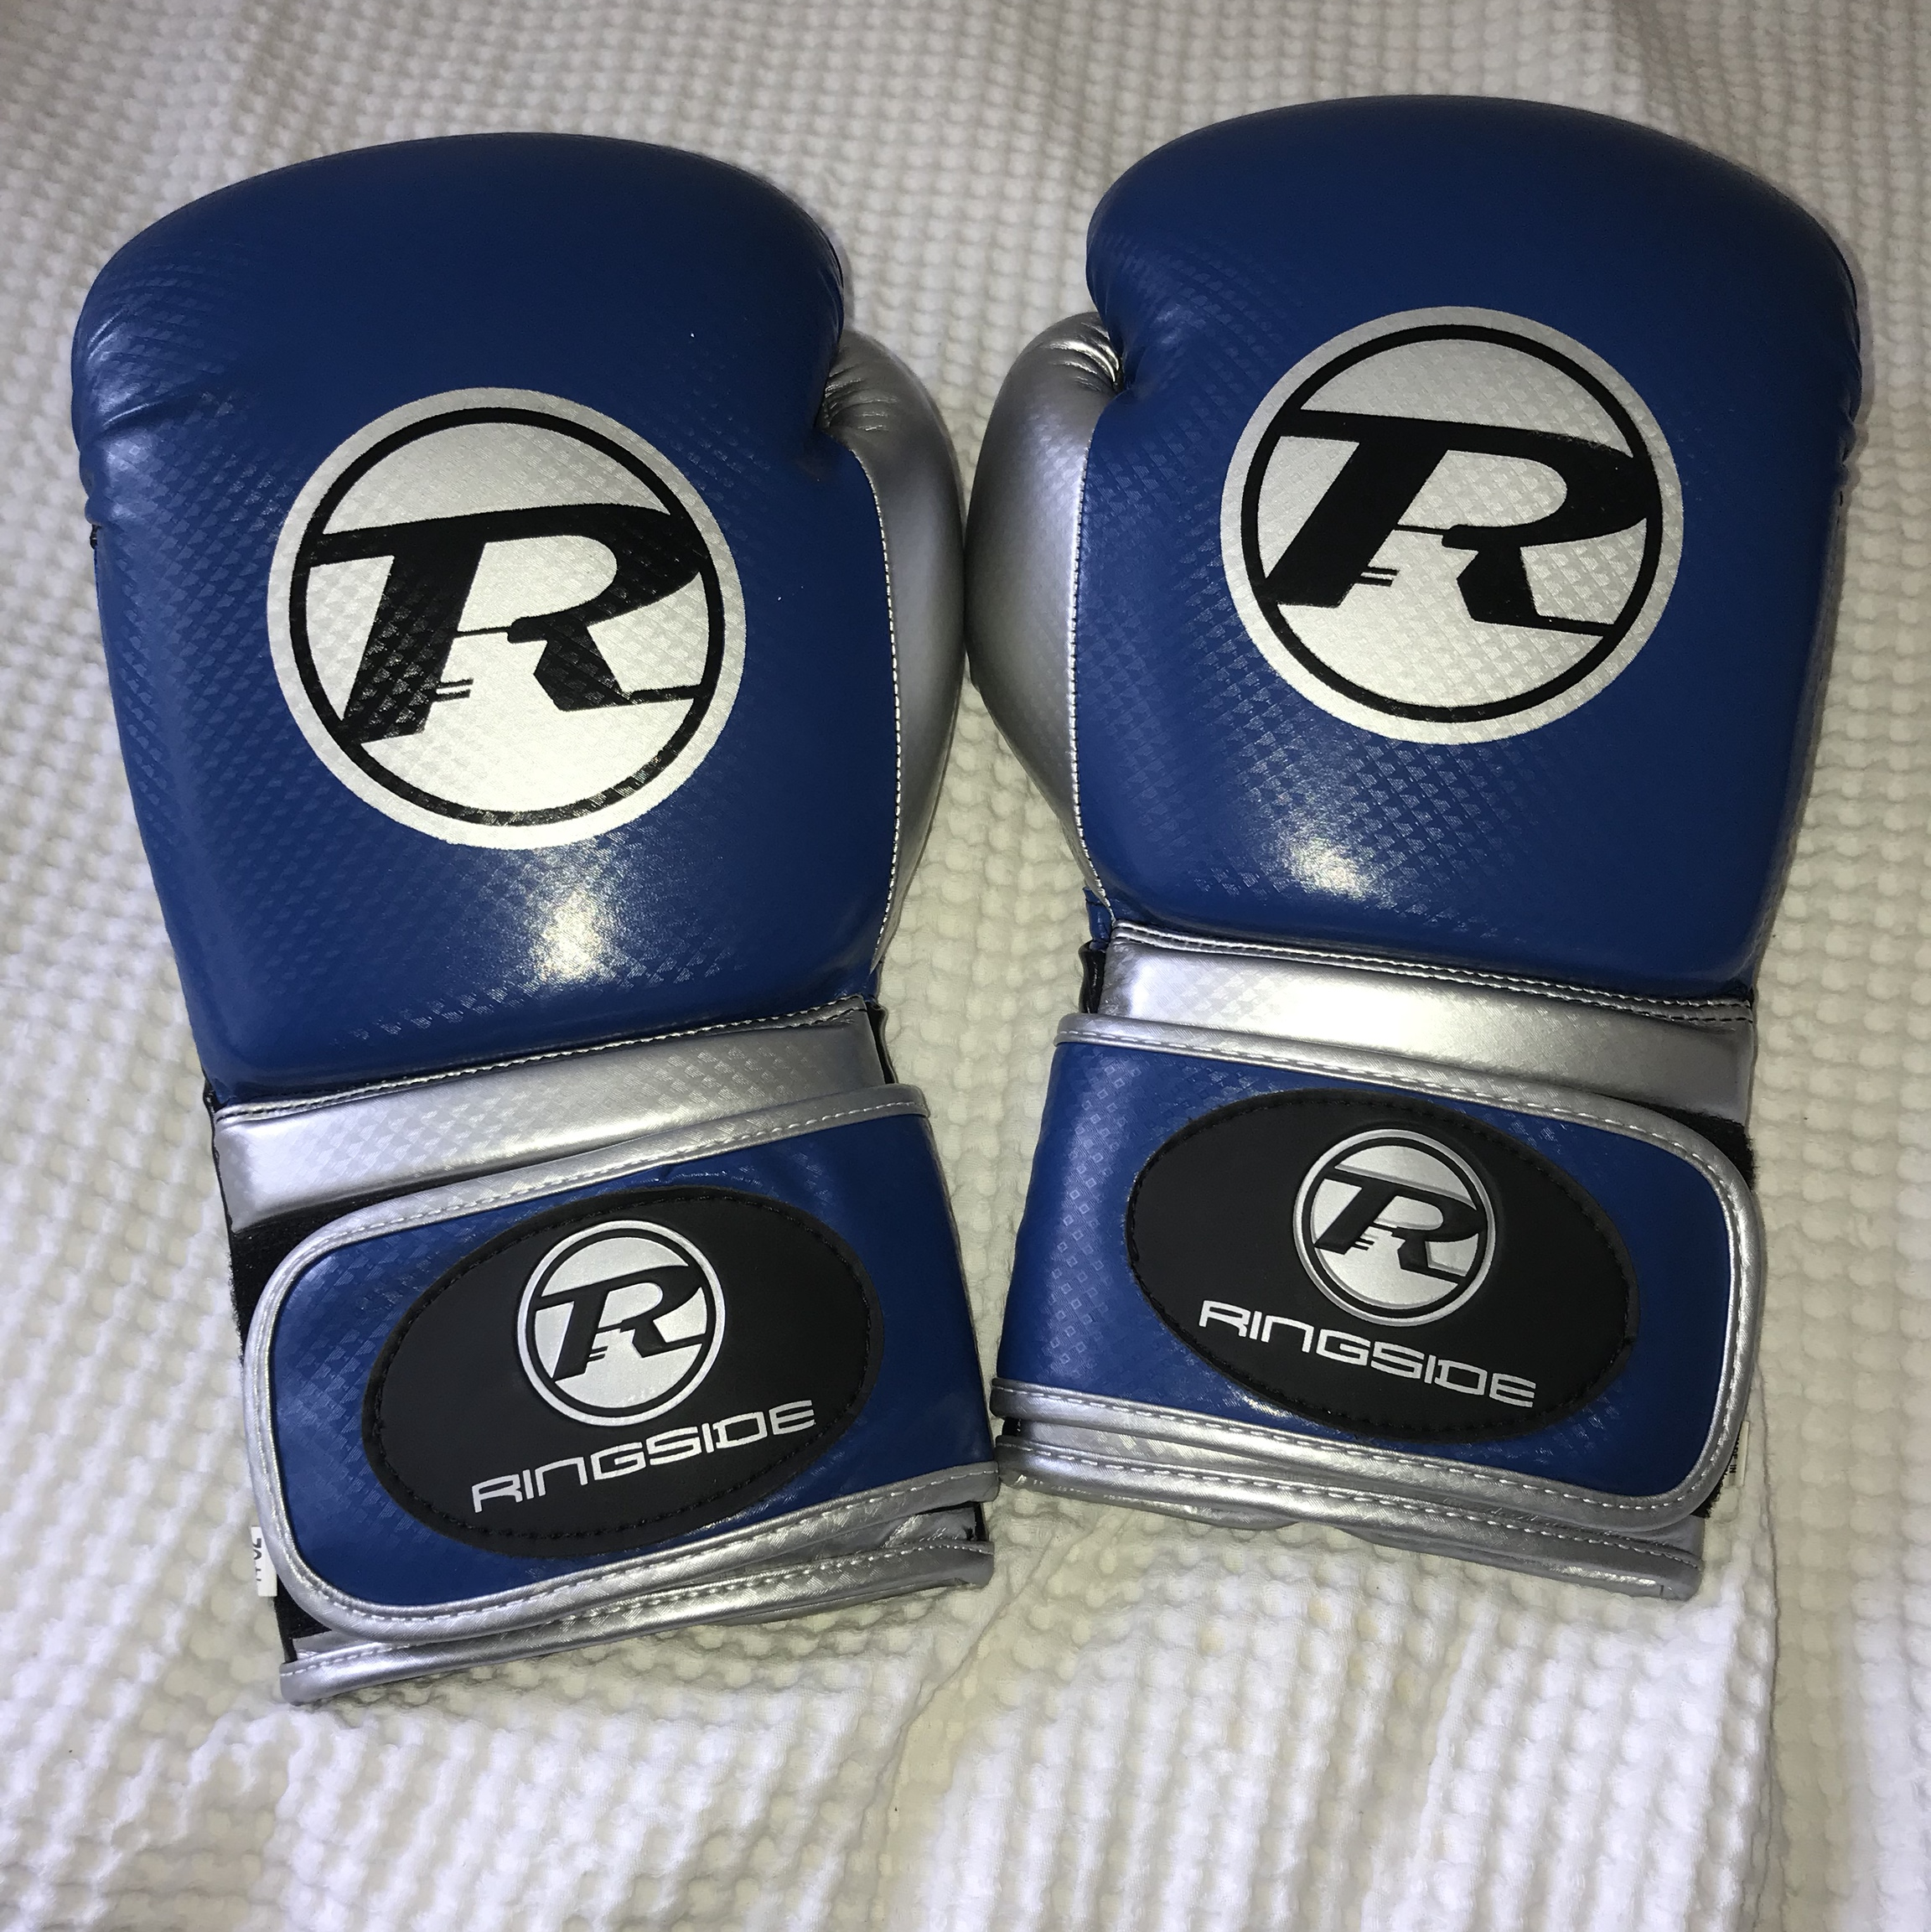 Ringside blue and silver boxing gloves, 14 0Z  Never    - Depop